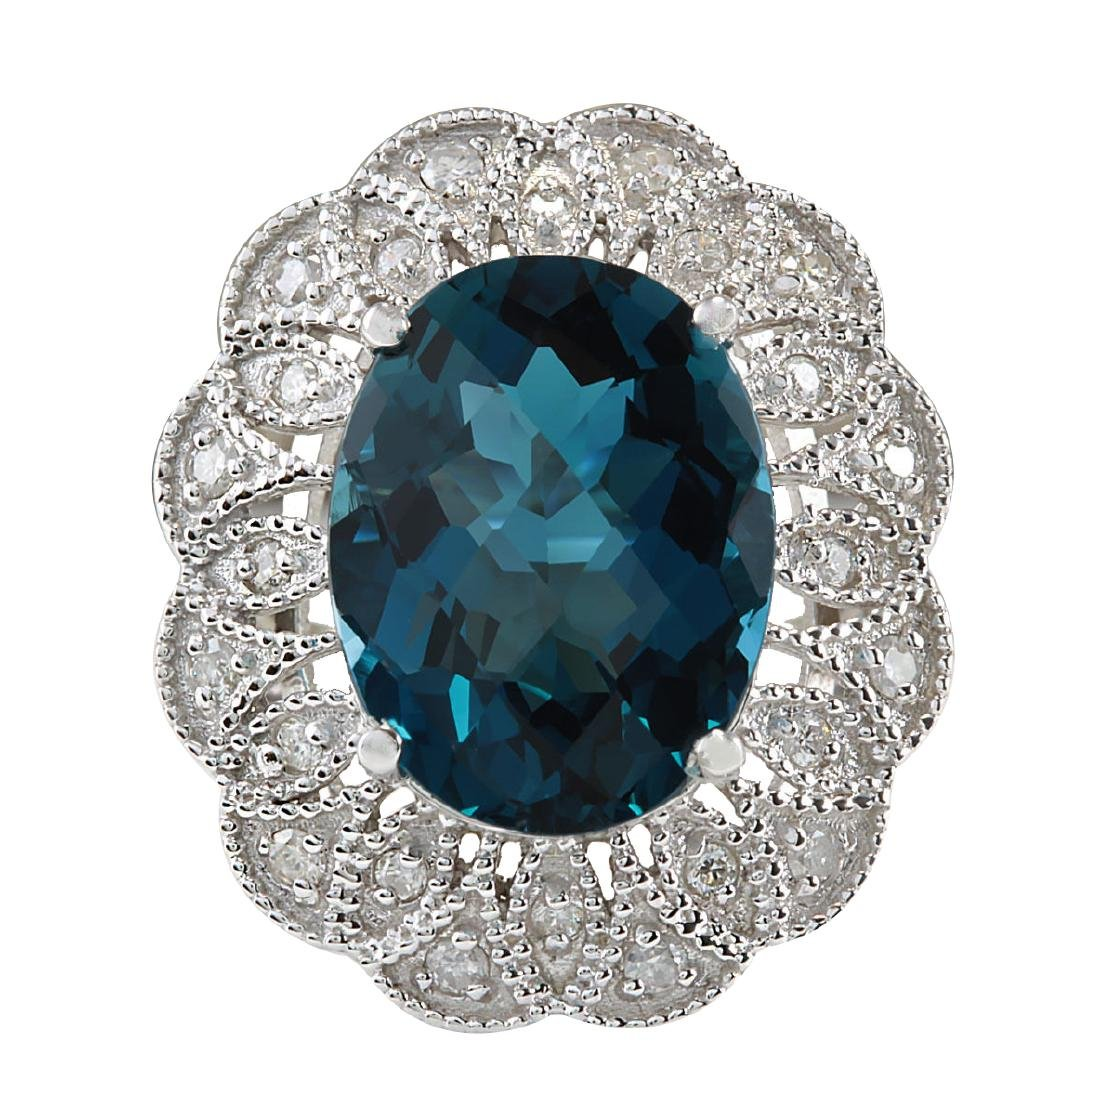 11.45CTW Natural London Blue Topaz And Diamond Ring In